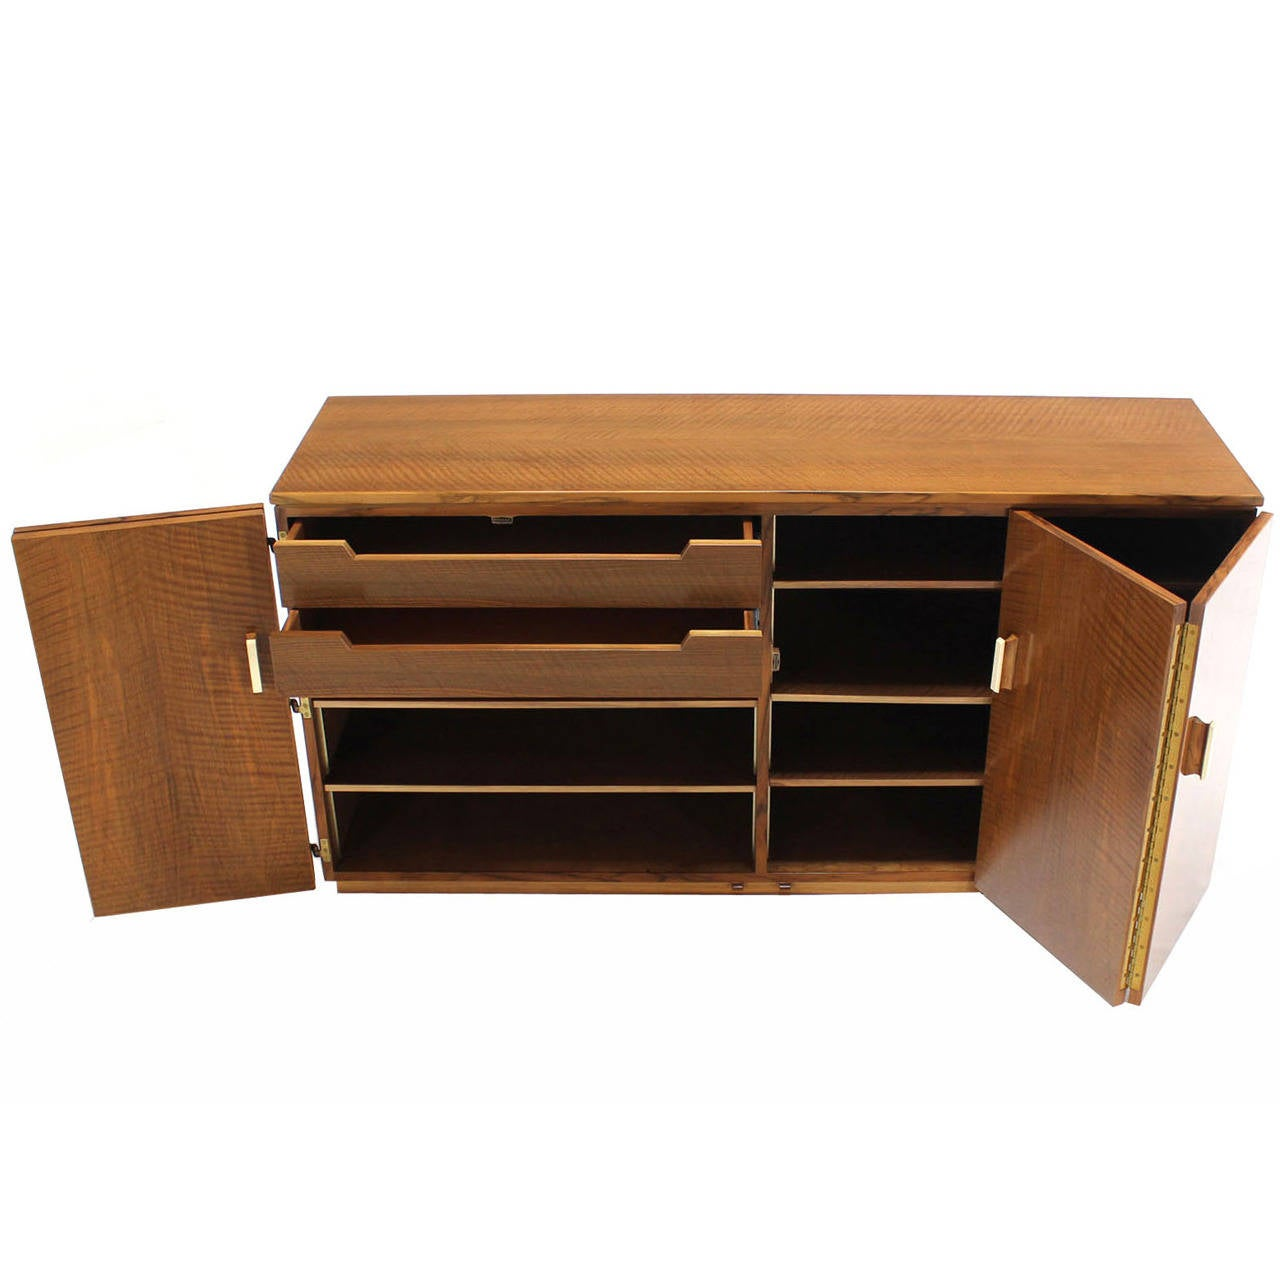 Tiger Maple Sideboard or Credenza with Folding Doors